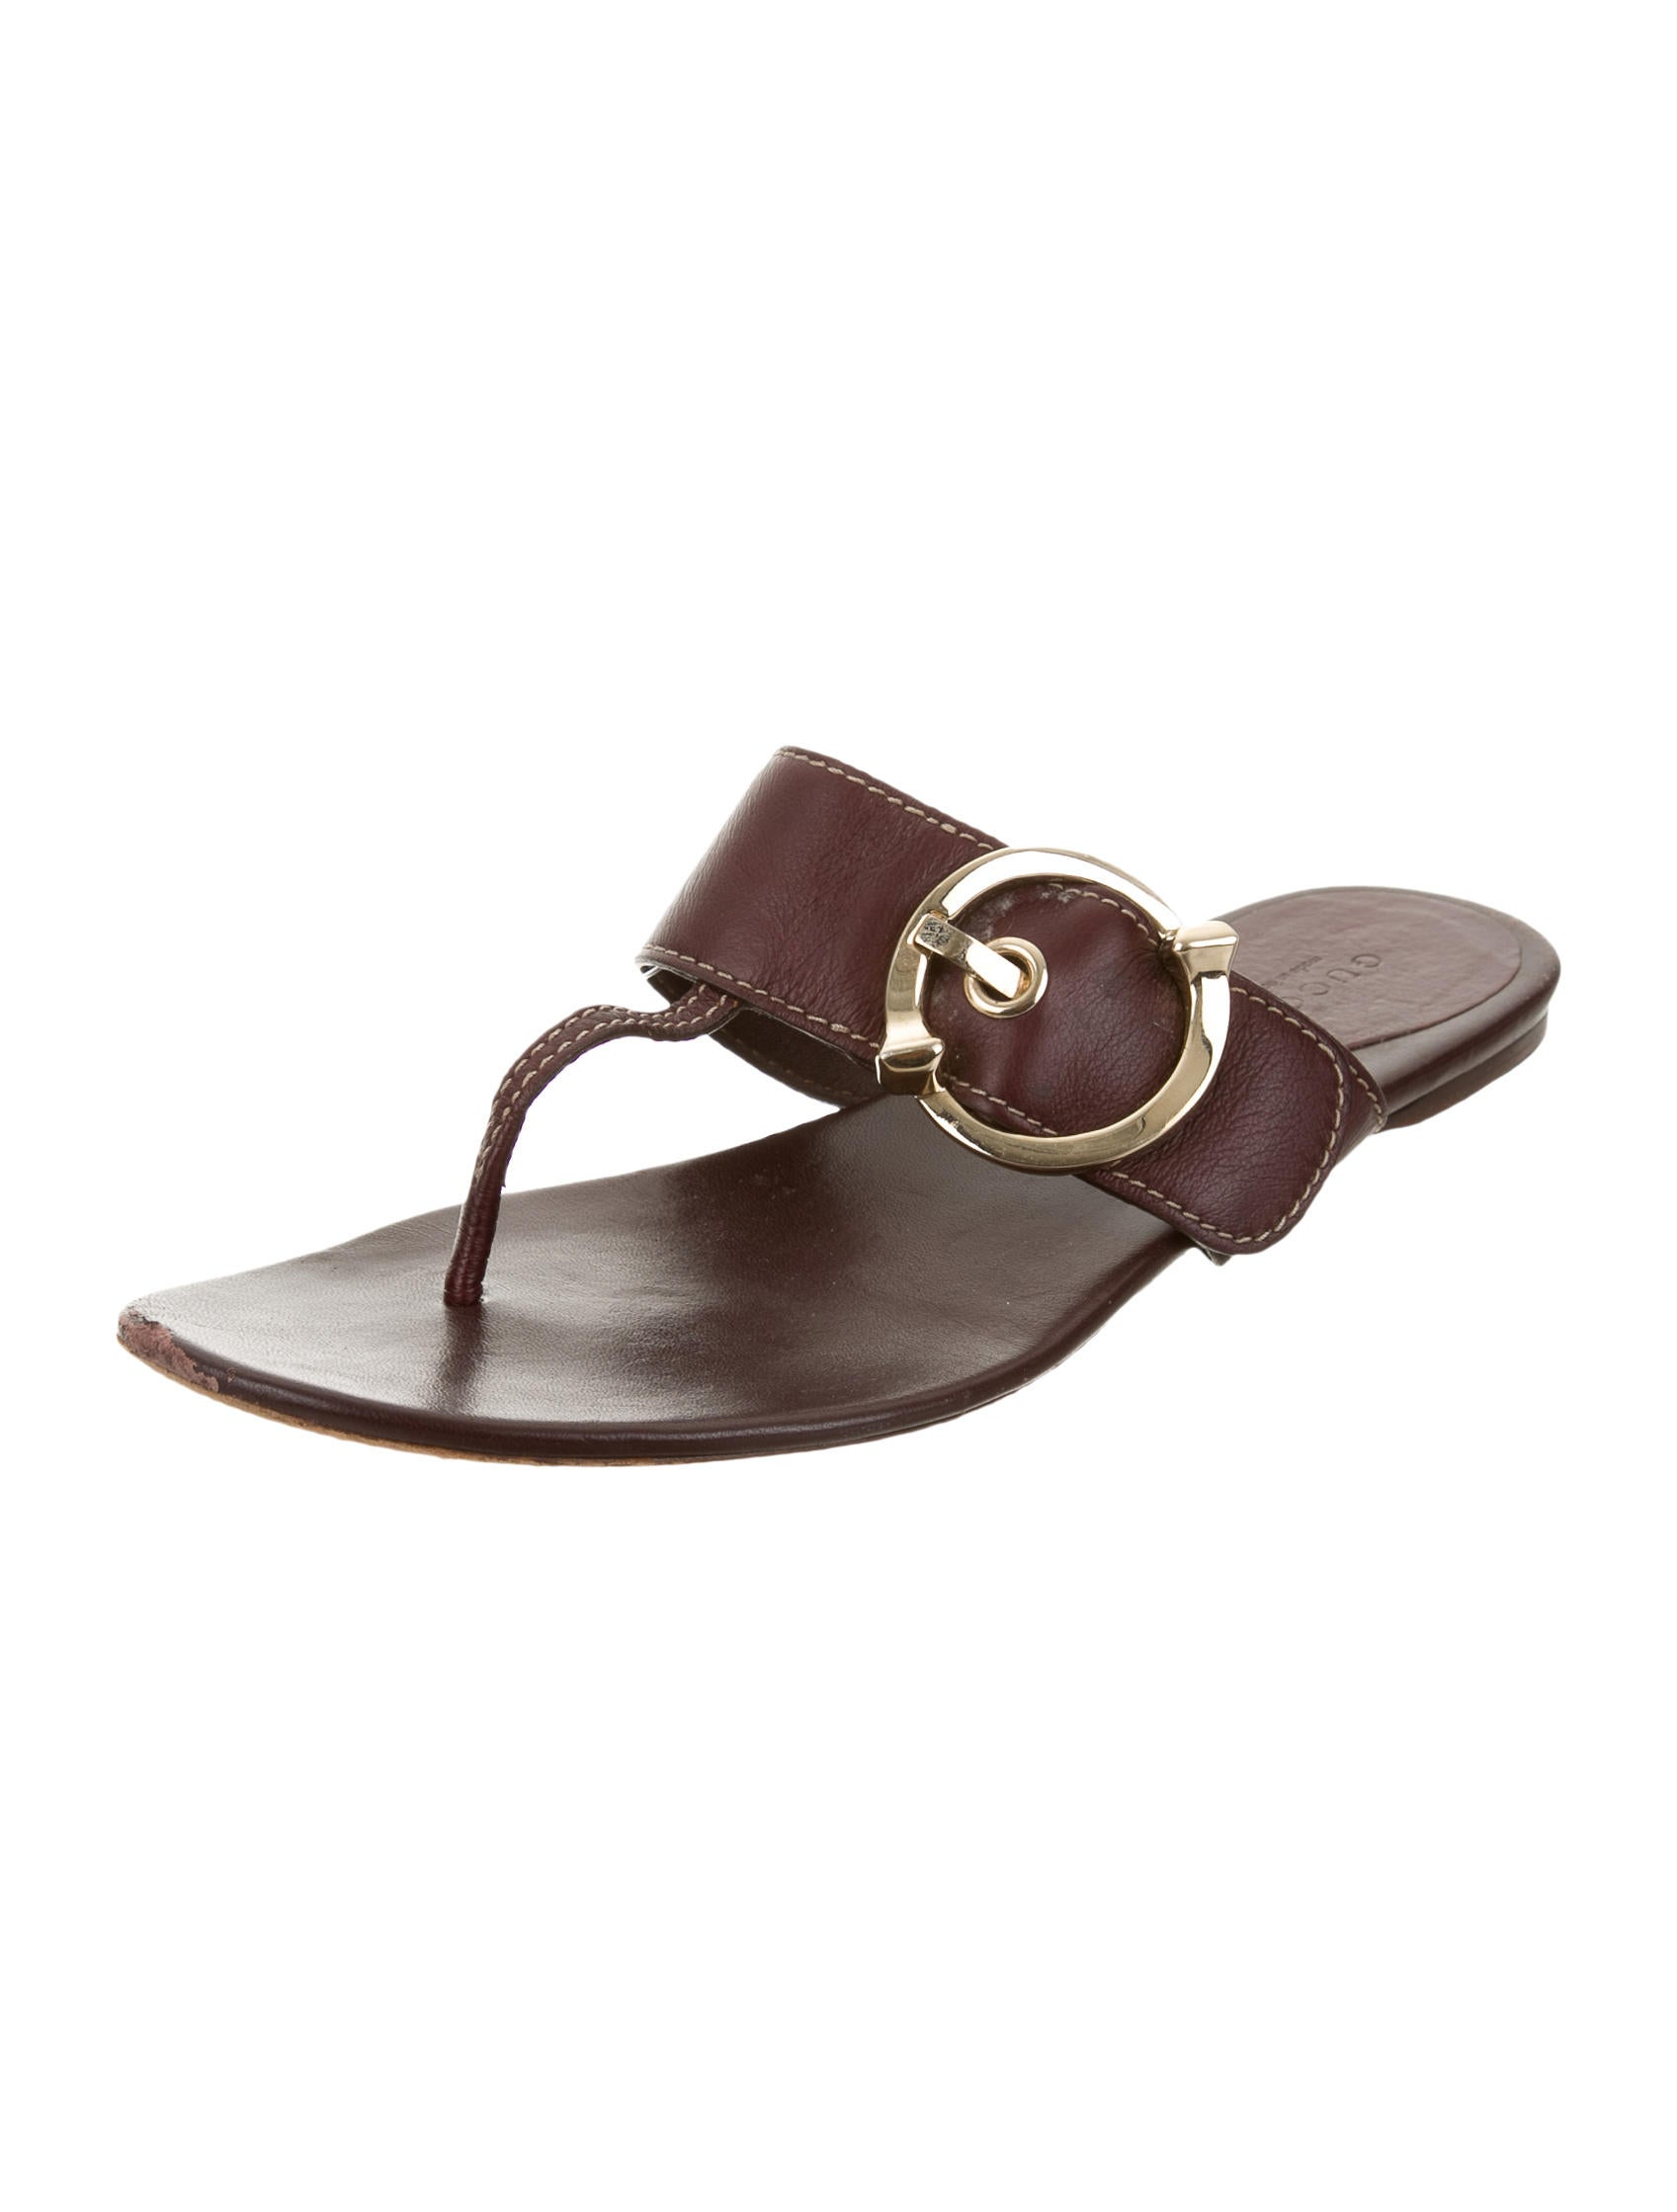 Gucci Leather Buckled Slide Sandals - Shoes - GUC102596 ...